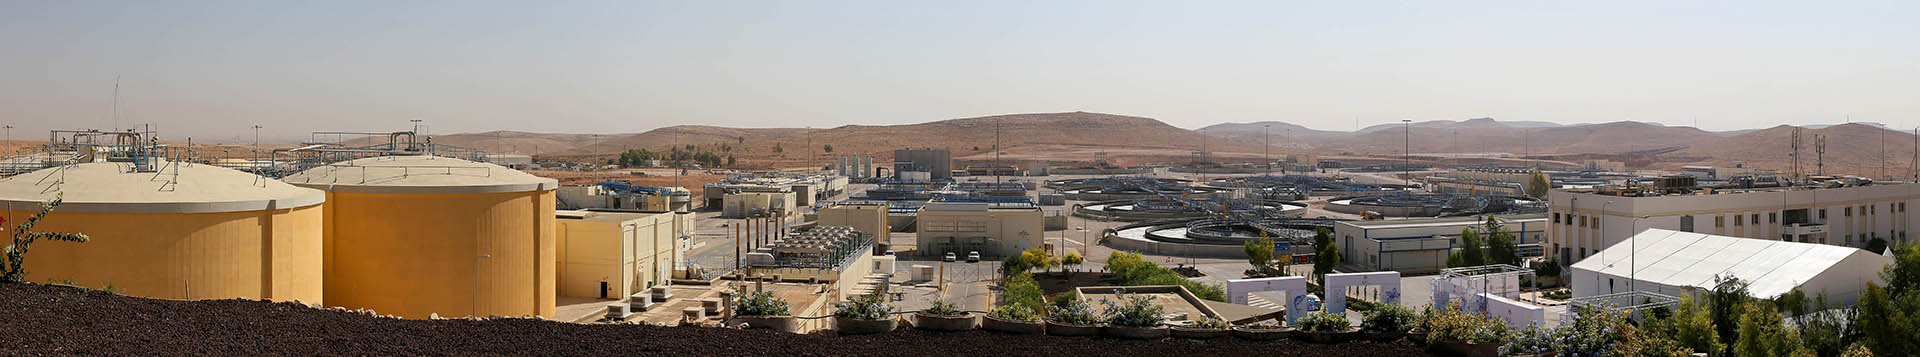 Panoramic view of As-Samra wastewater treatment plant